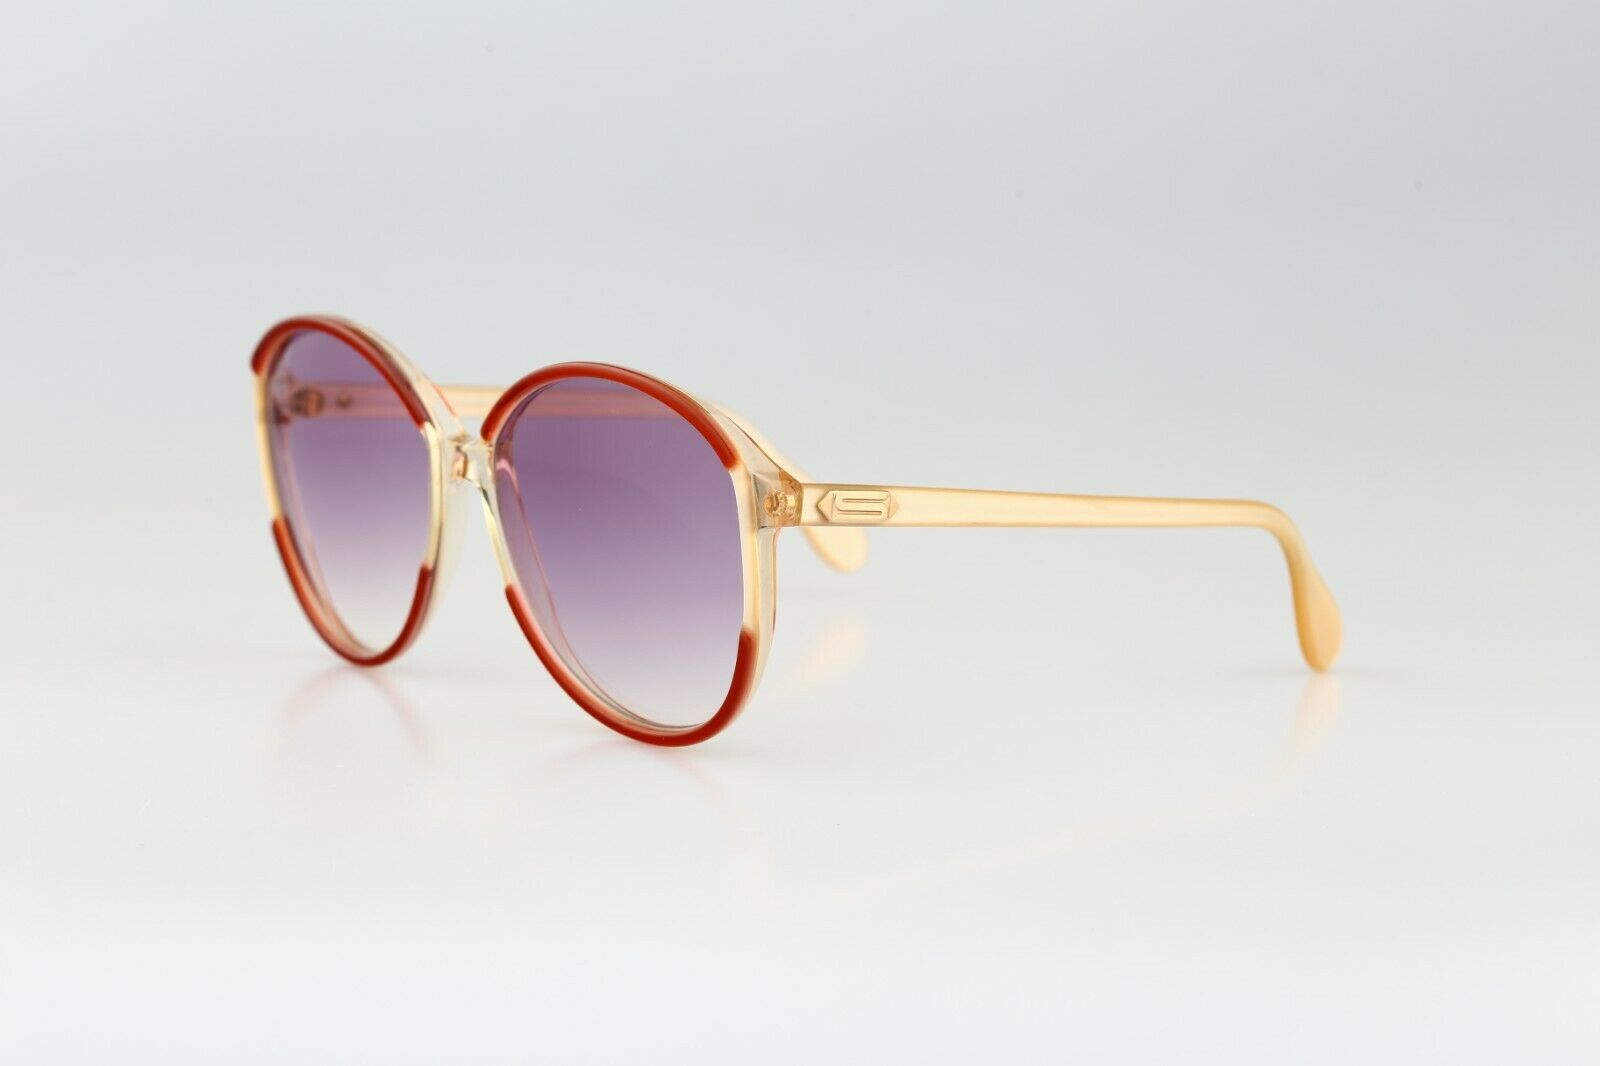 Silhouette M 1126 20 C 2713, Vintage 70s red & cl… - image 5